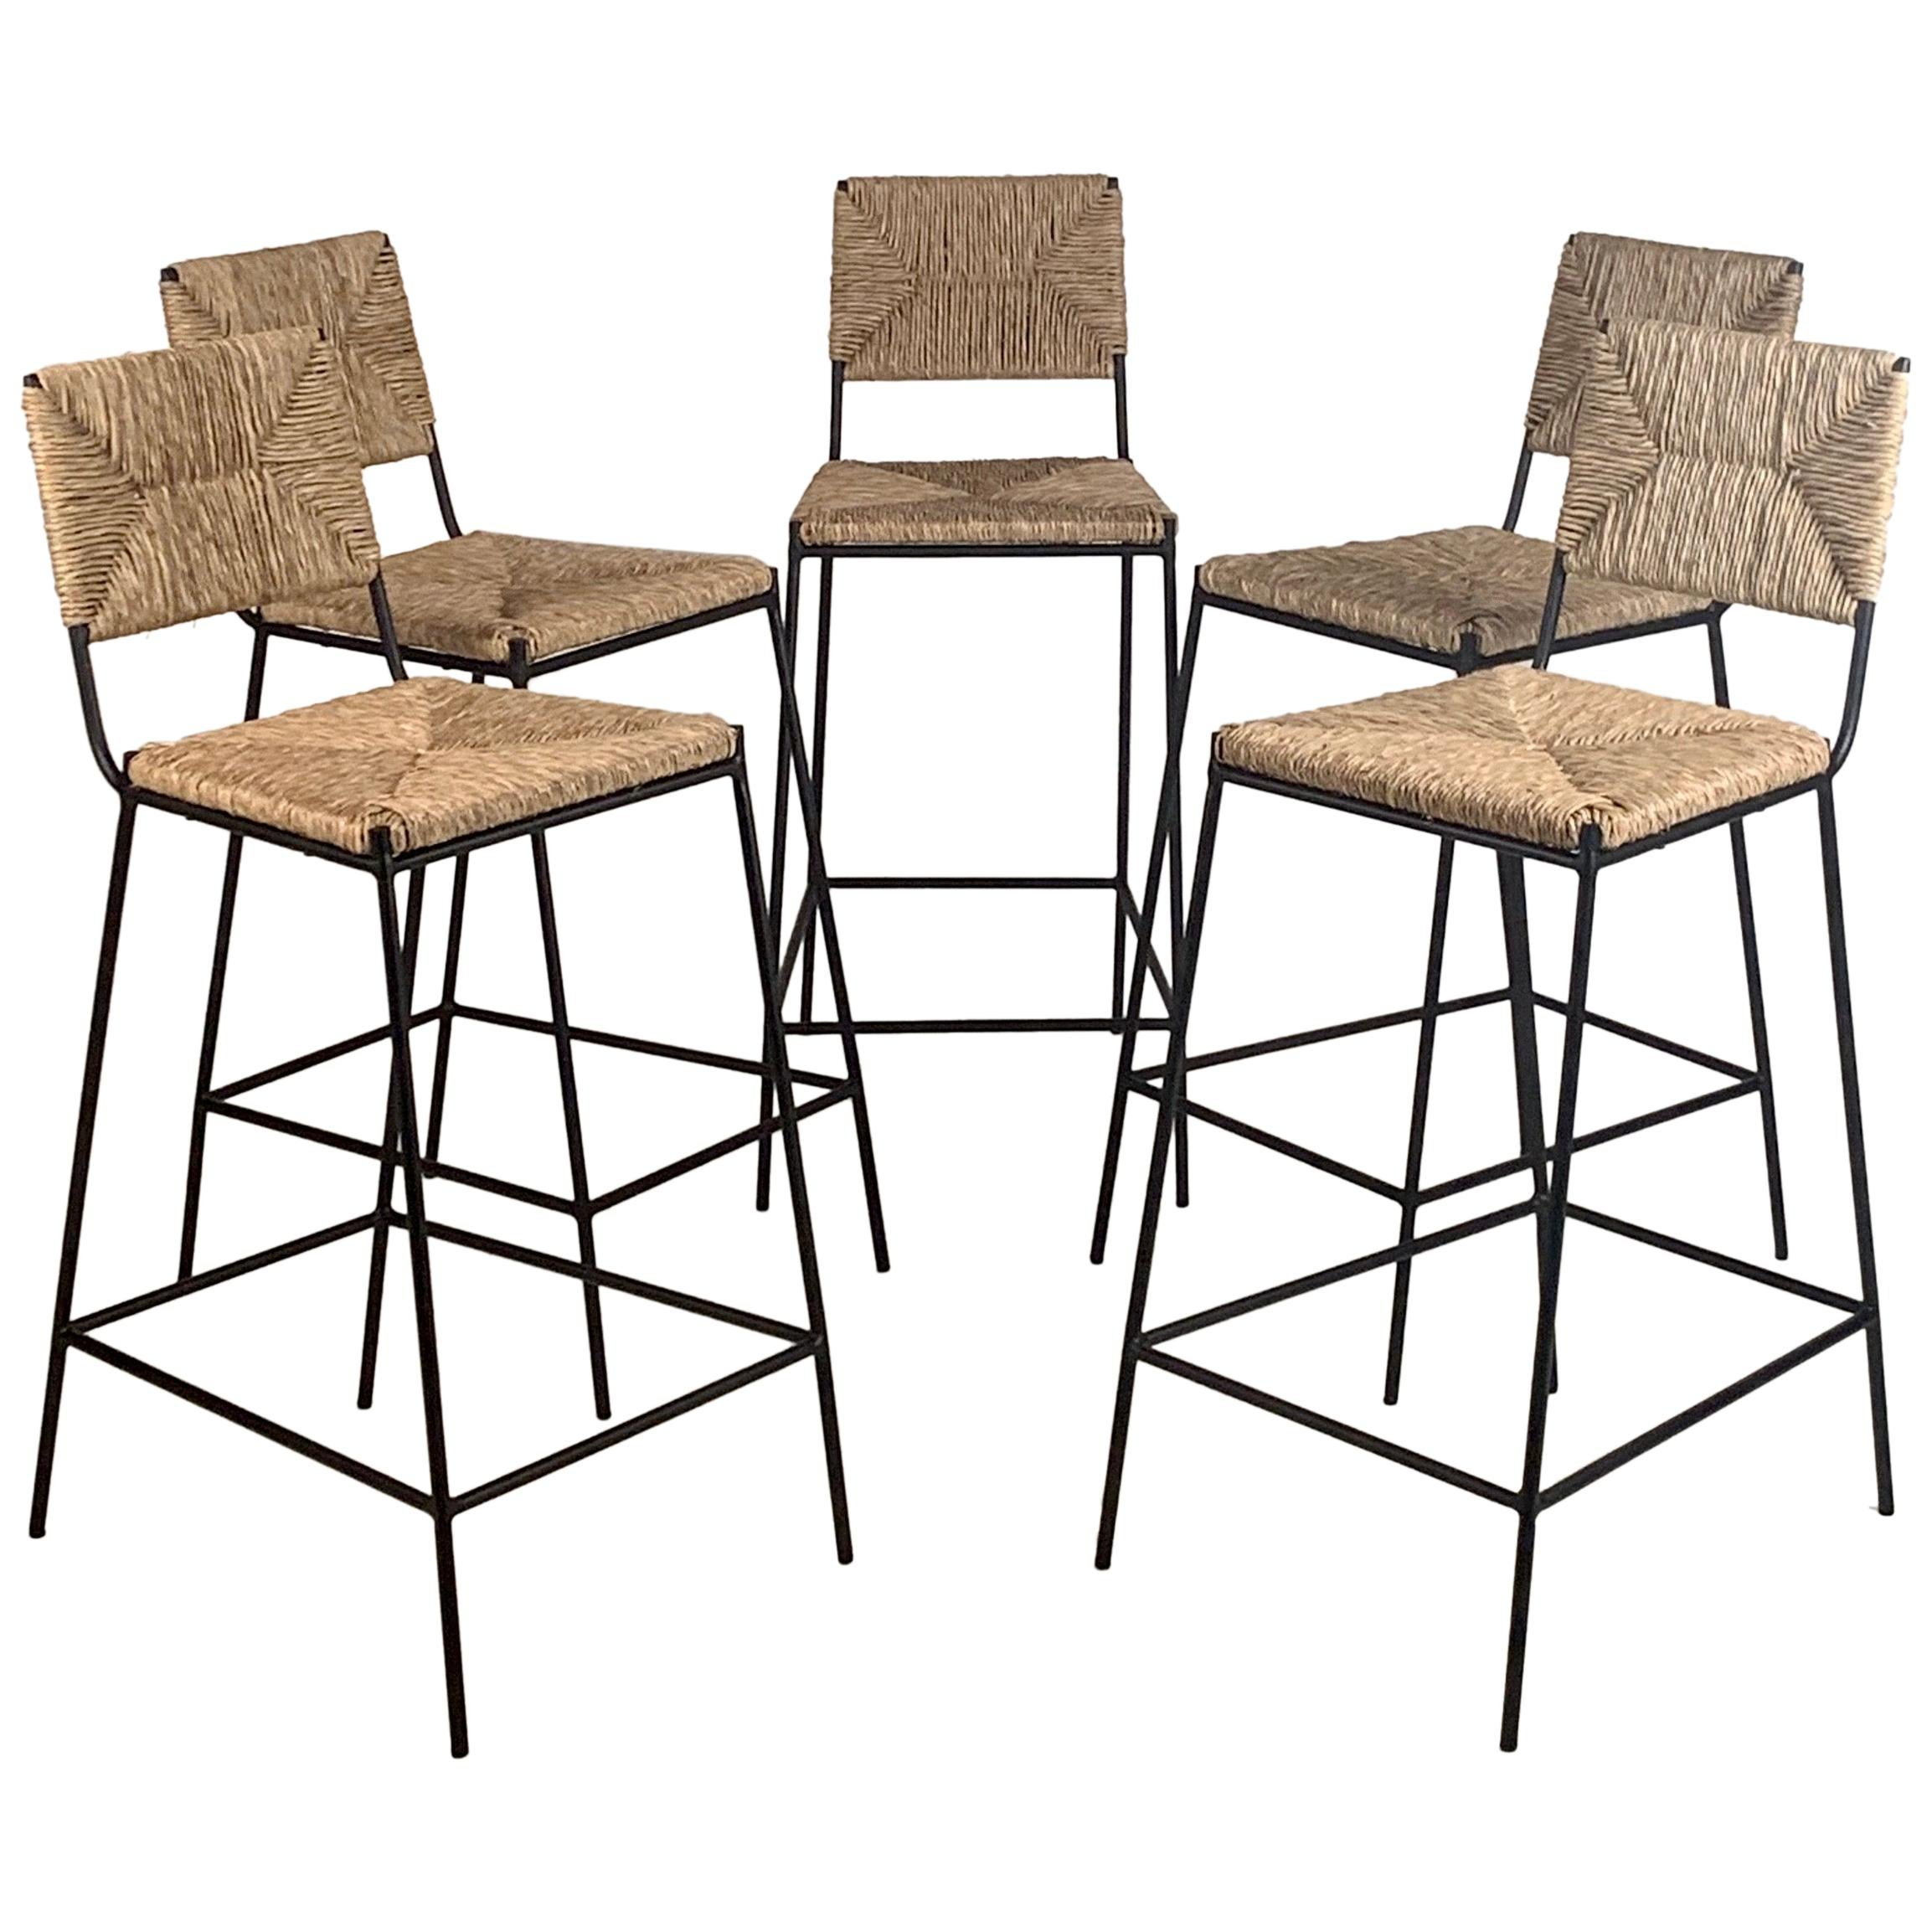 Set of 5 'Campagne' Counter Height Stools by Design Frères